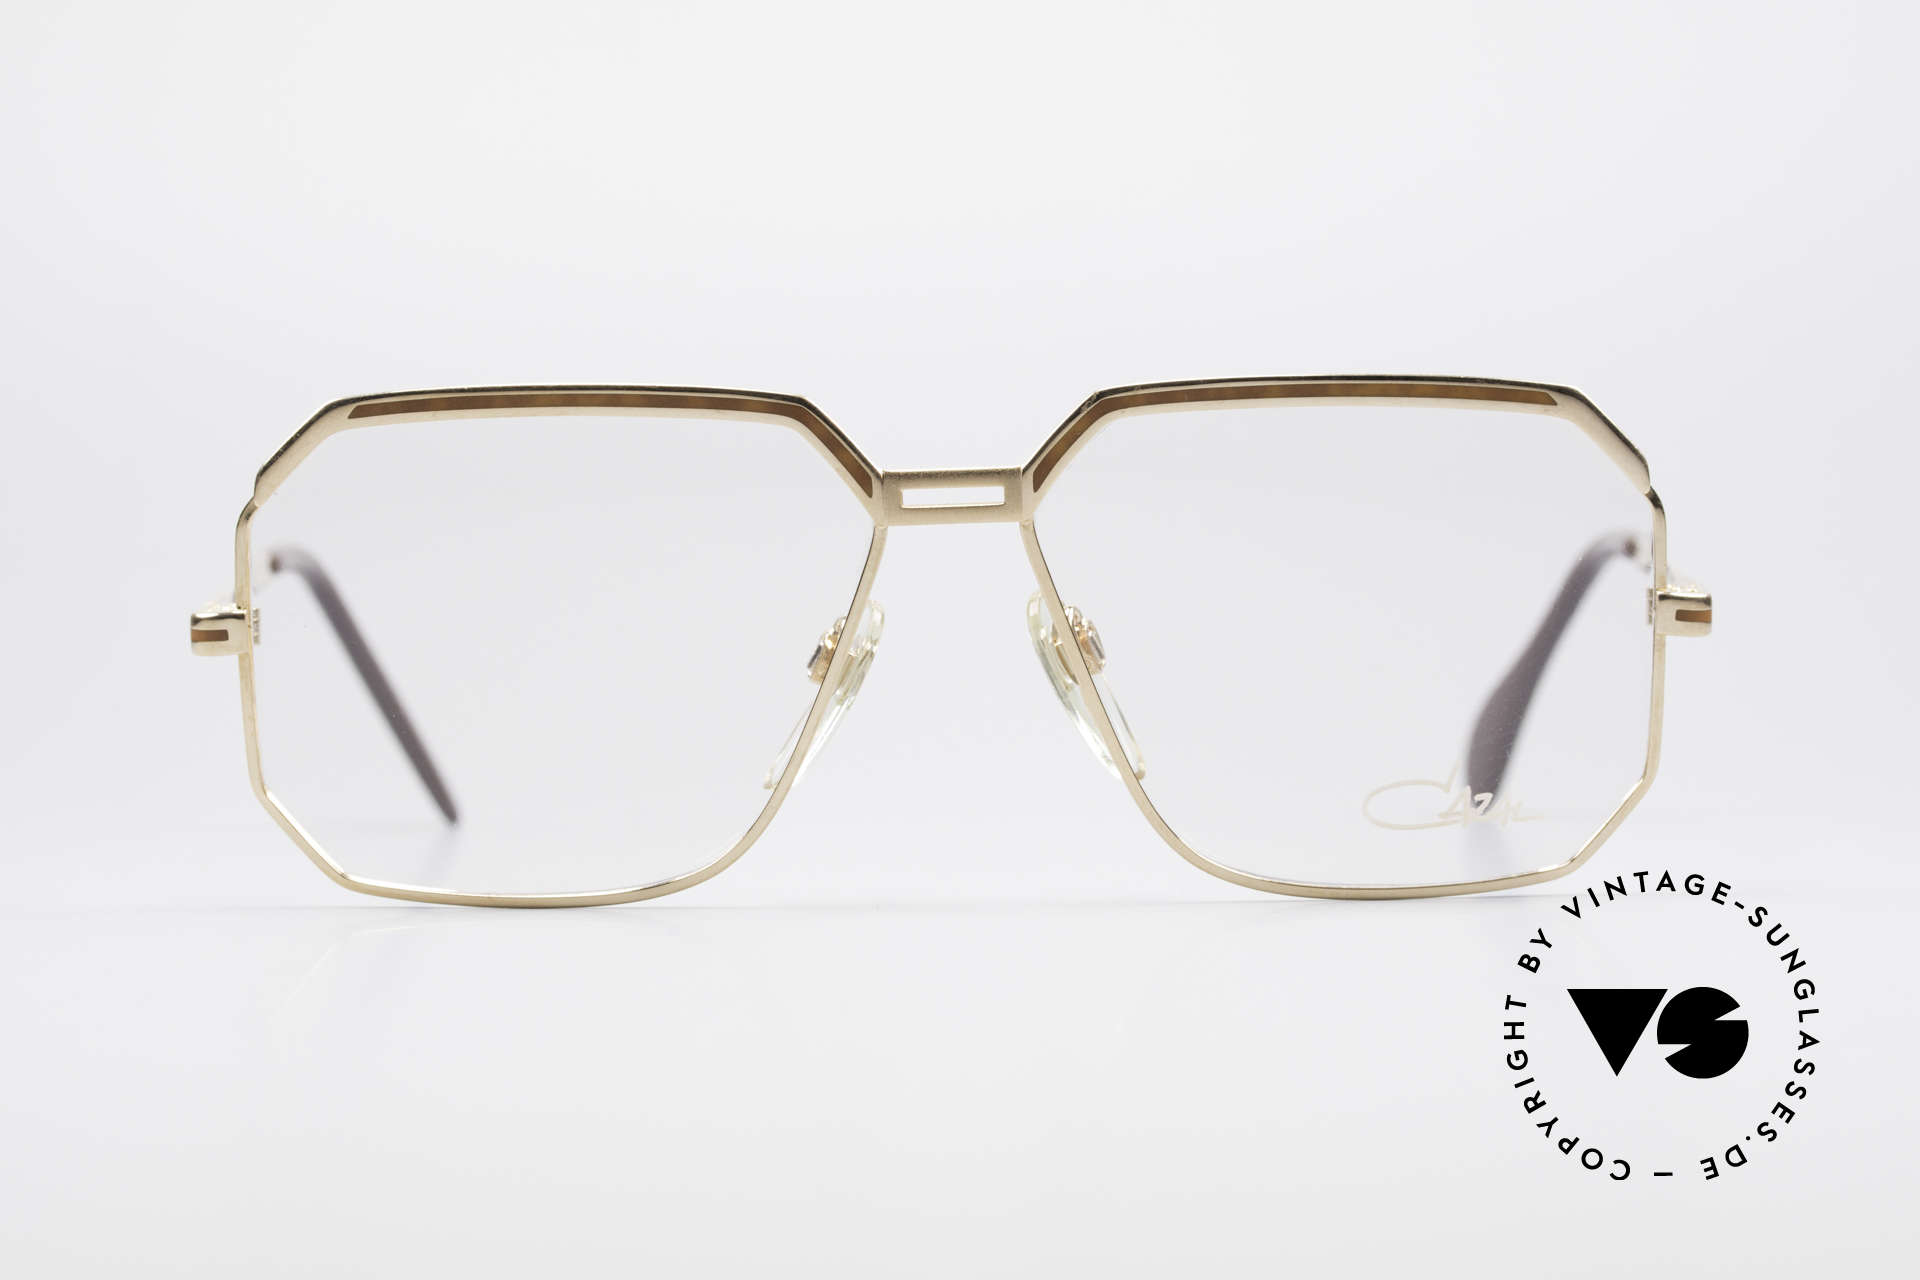 Cazal 727 Michail Gorbatschow Glasses, famous original from the 80's (W.Germany), Made for Men